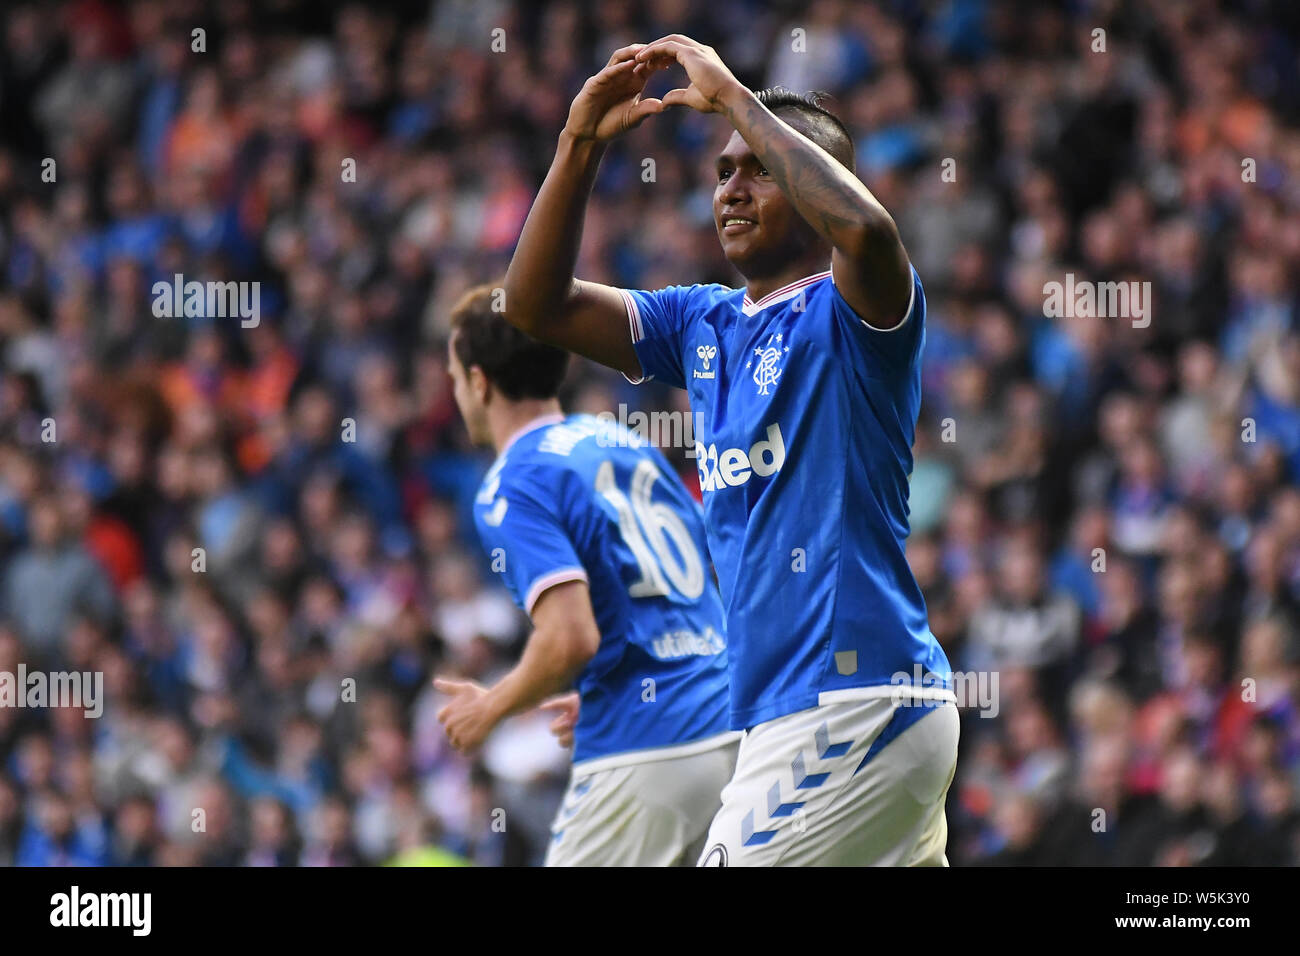 GLASGOW, SCOTLAND - JULY 18, 2019: Alfredo Morelos of Rangers celebrates after he scored his second and his team's third goal during the 2nd leg of the 2019/20 UEFA Europa League First Qualifying Round game between Rangers FC (Scotland) and St Joseph's FC (Gibraltar) at Ibrox Park. Stock Photo